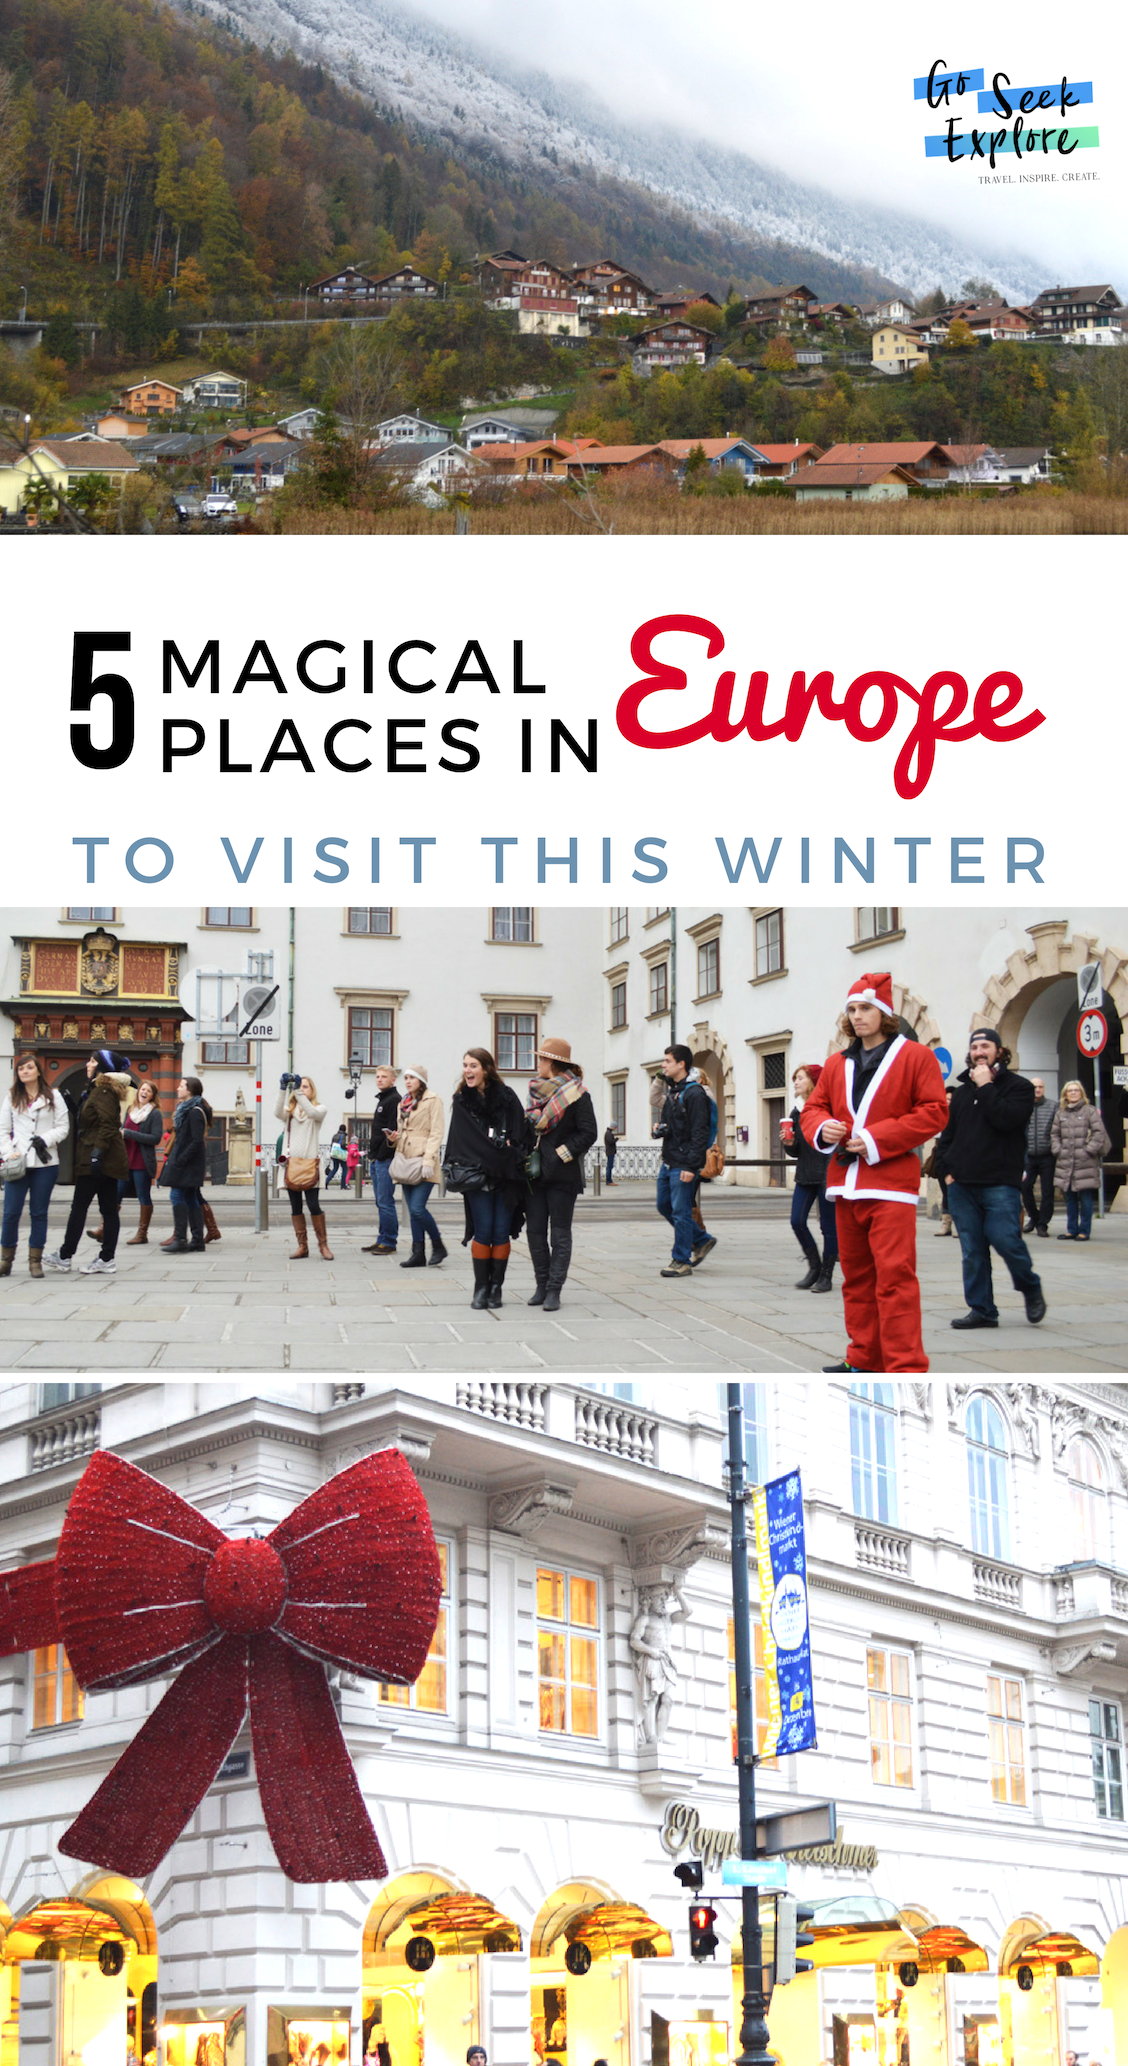 Europe's most magical winter destinations! if you're taking advantage of travel this winter, consider these destinations known for being a perfect winter wander-land. Also, winter is the off season for Europe in general, so you're more likely to find less expensive accommodation, cheaper flights, and have shorter lines at popular attractions! / goseekexplore.com